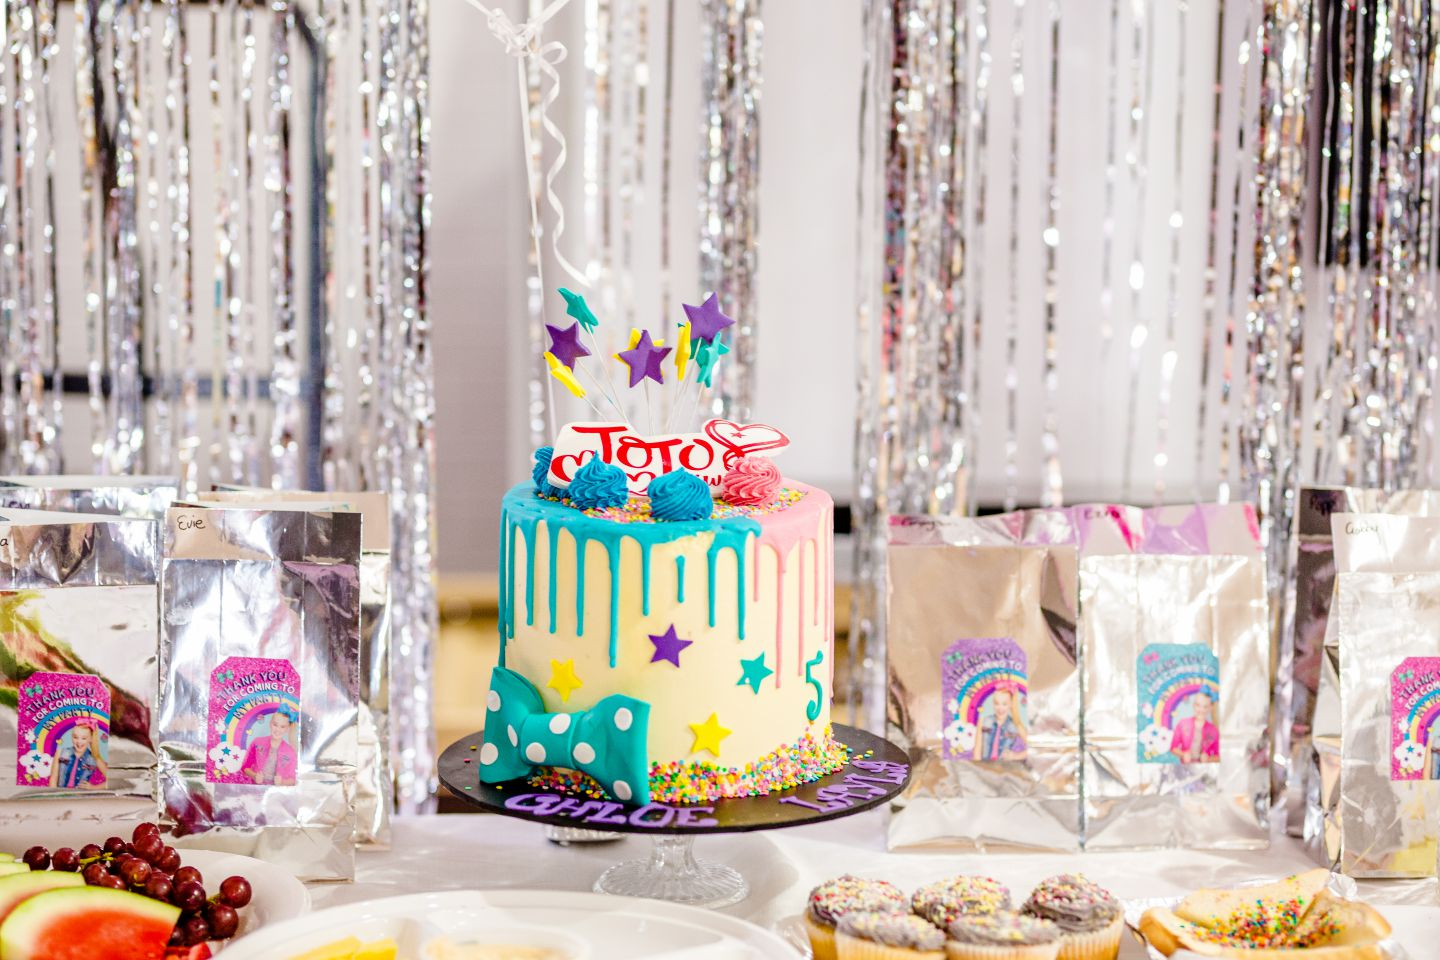 A Jojo Siwa birthday cake and decorations at a children's party in Caboolture.